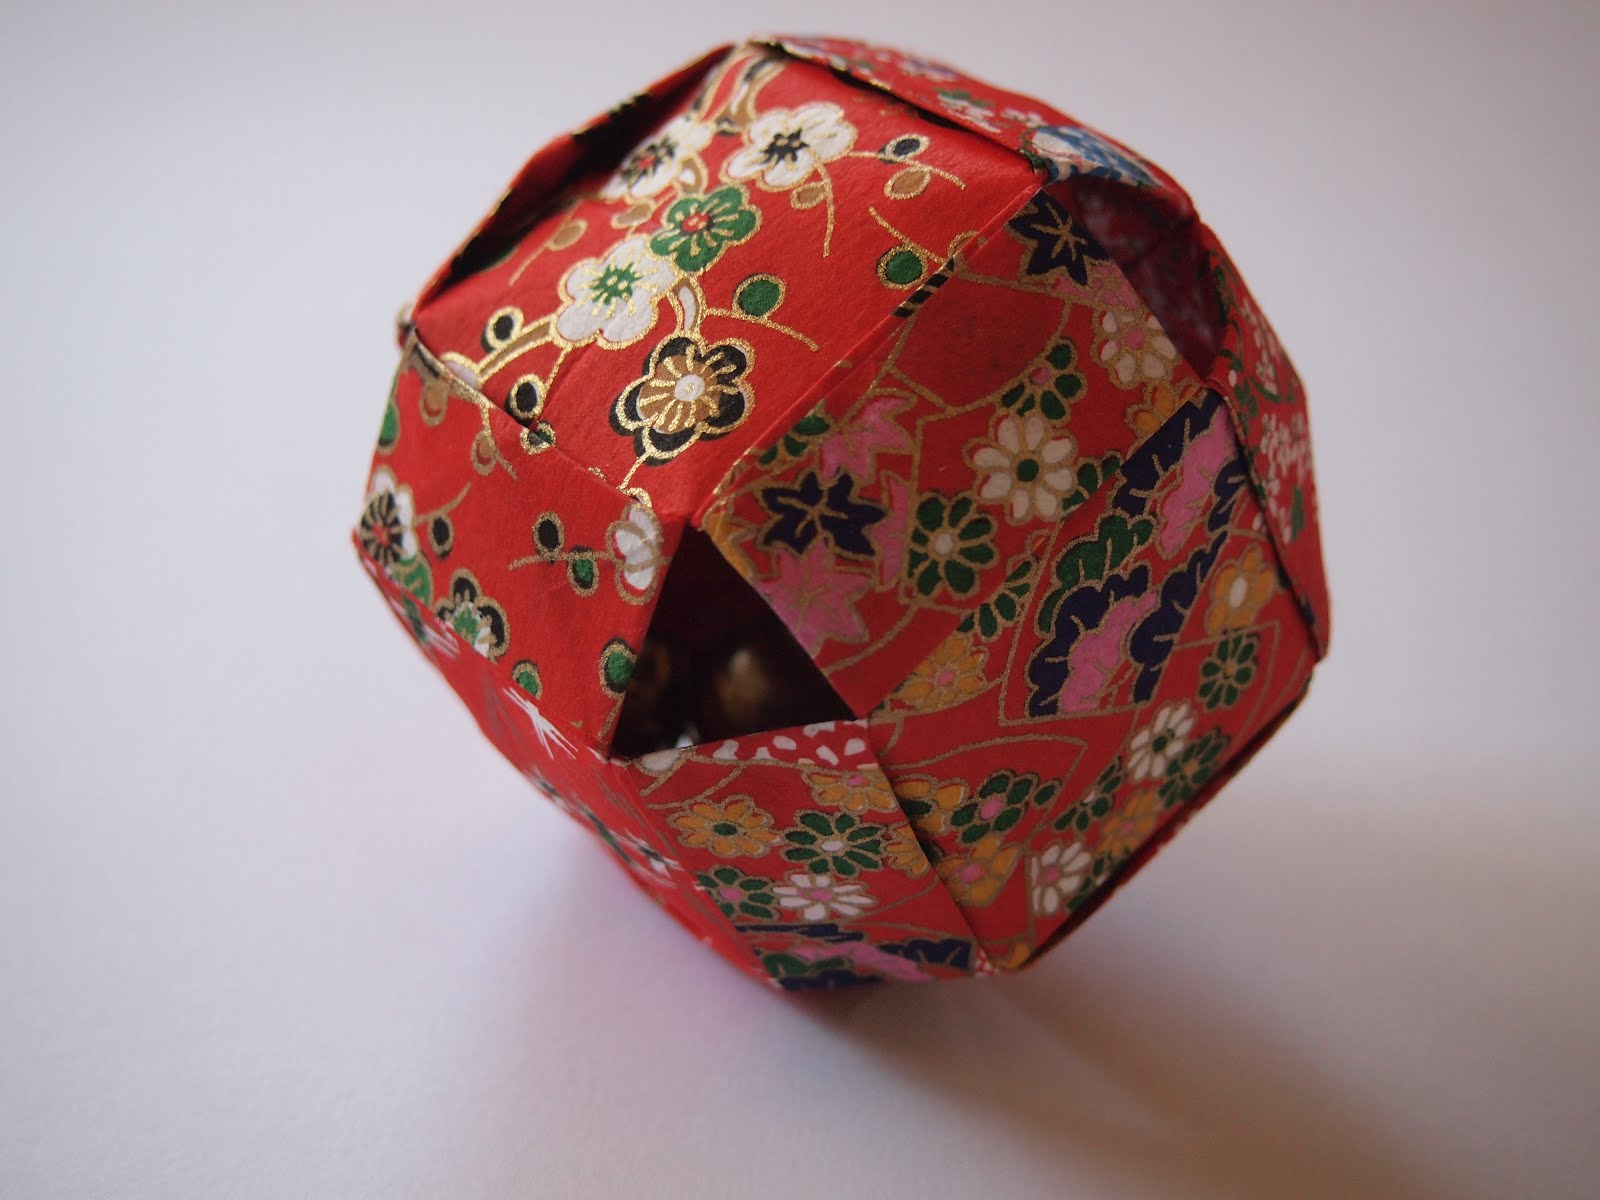 This Origami Sphere Is Made By Connecting 6 Individual Units Together